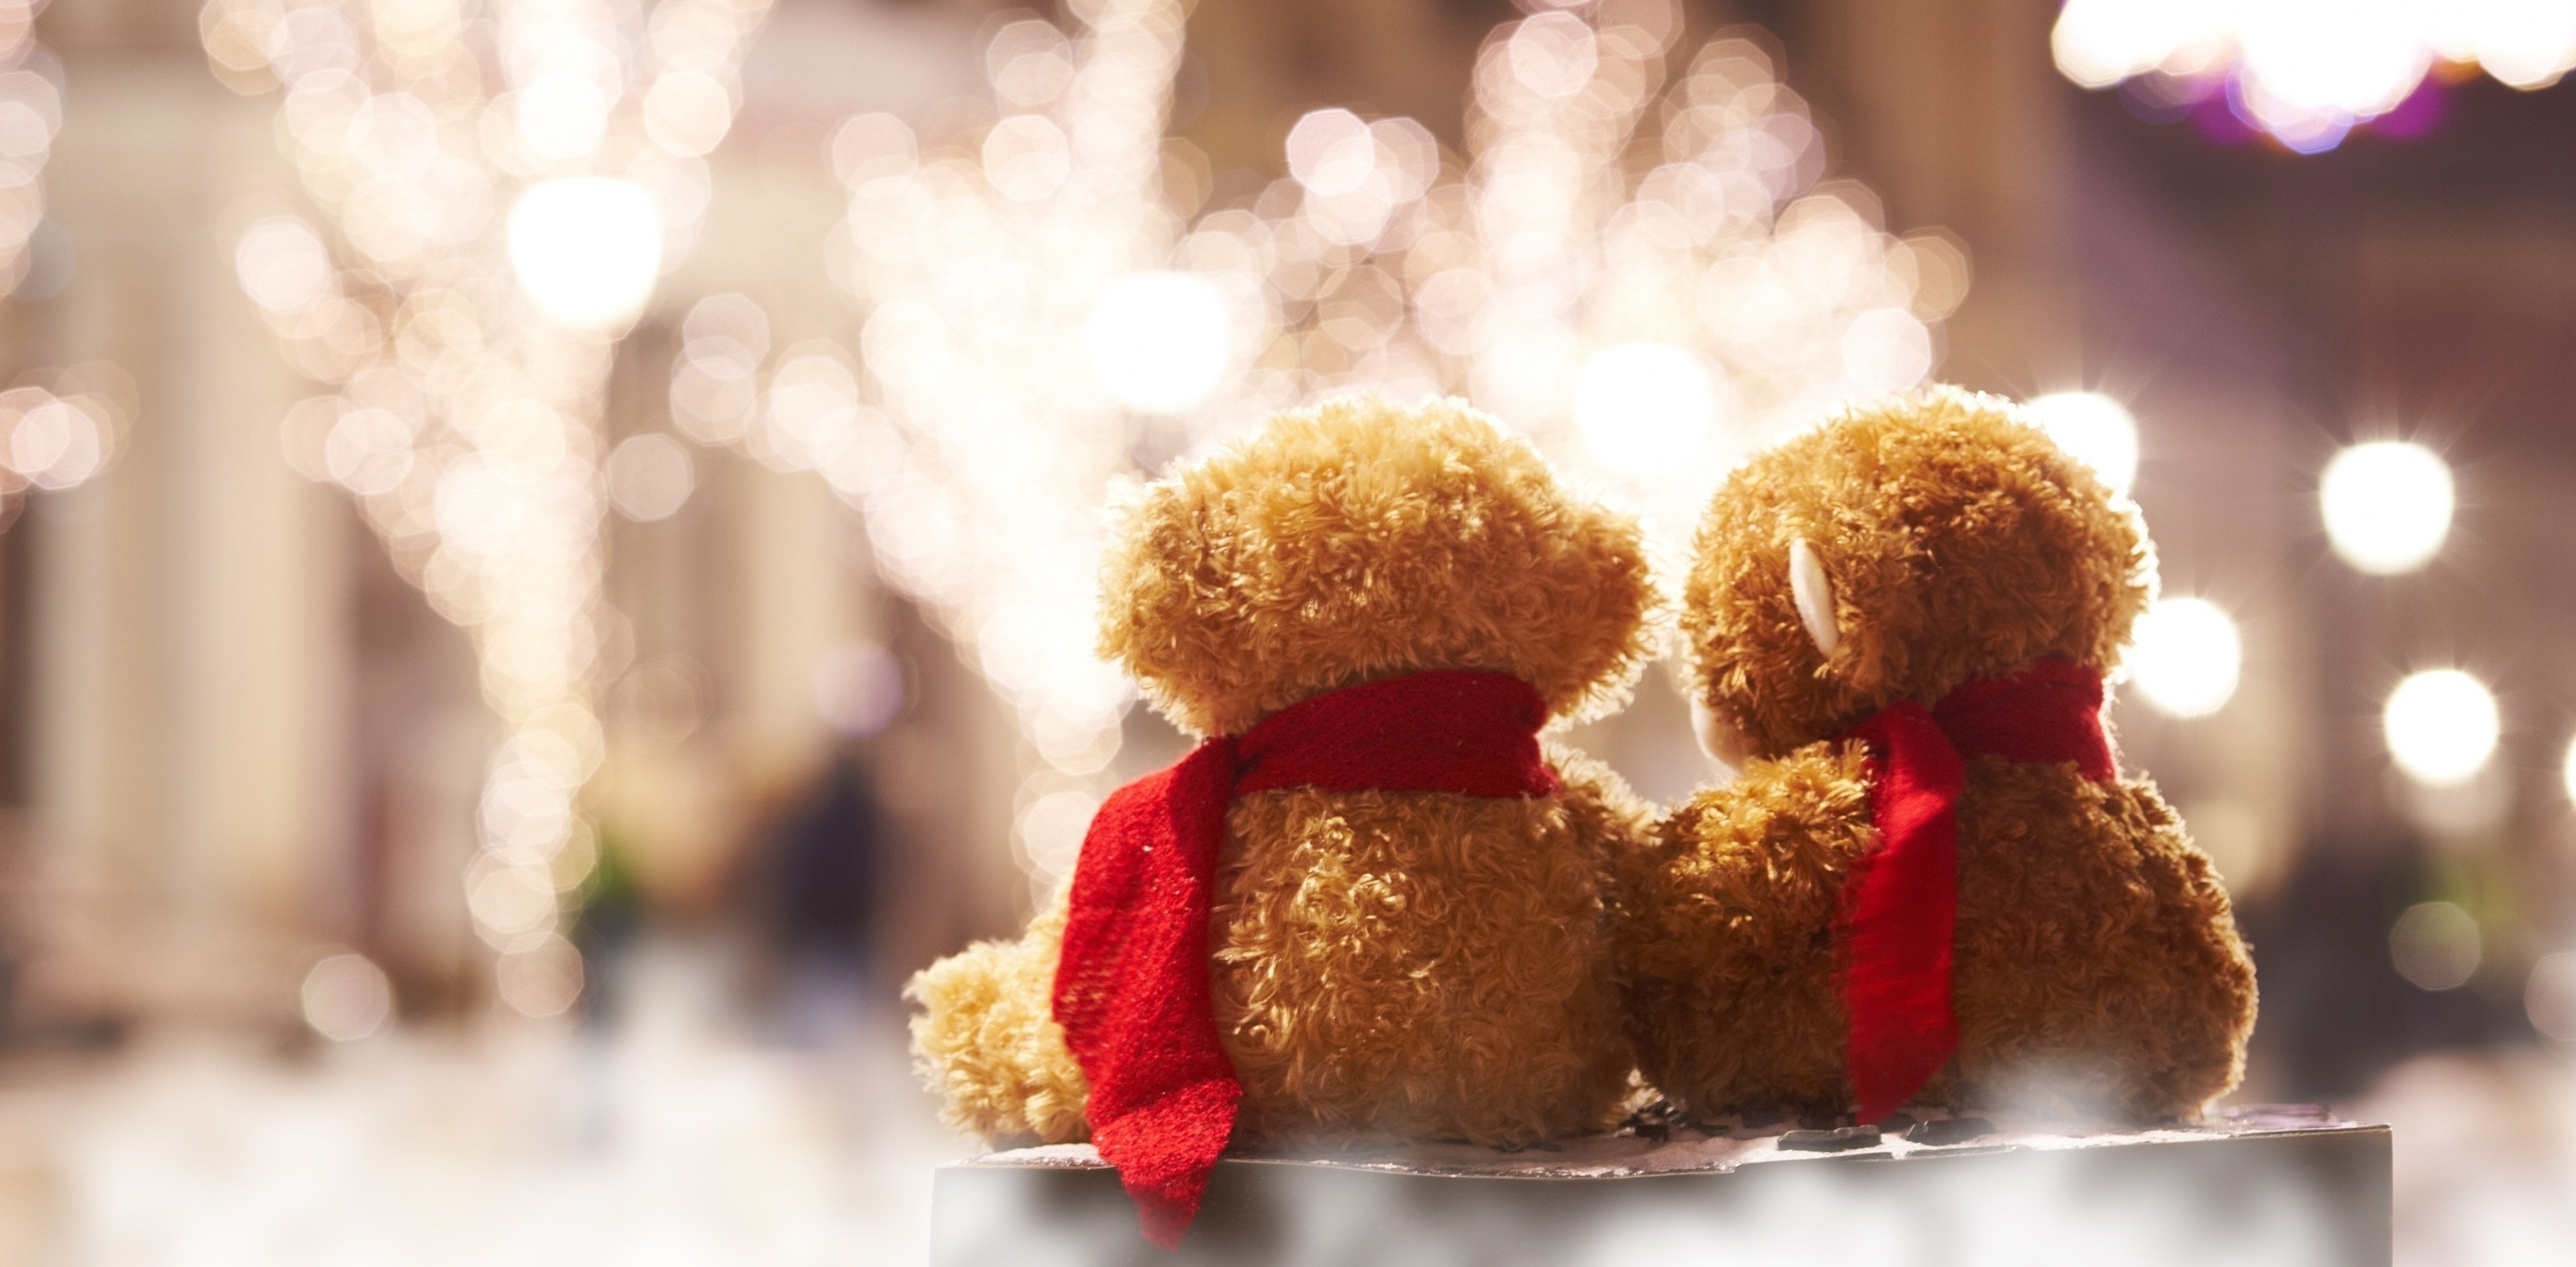 Teddy bear romance together lights love mood toy wallpaper | |  848754 | WallpaperUP